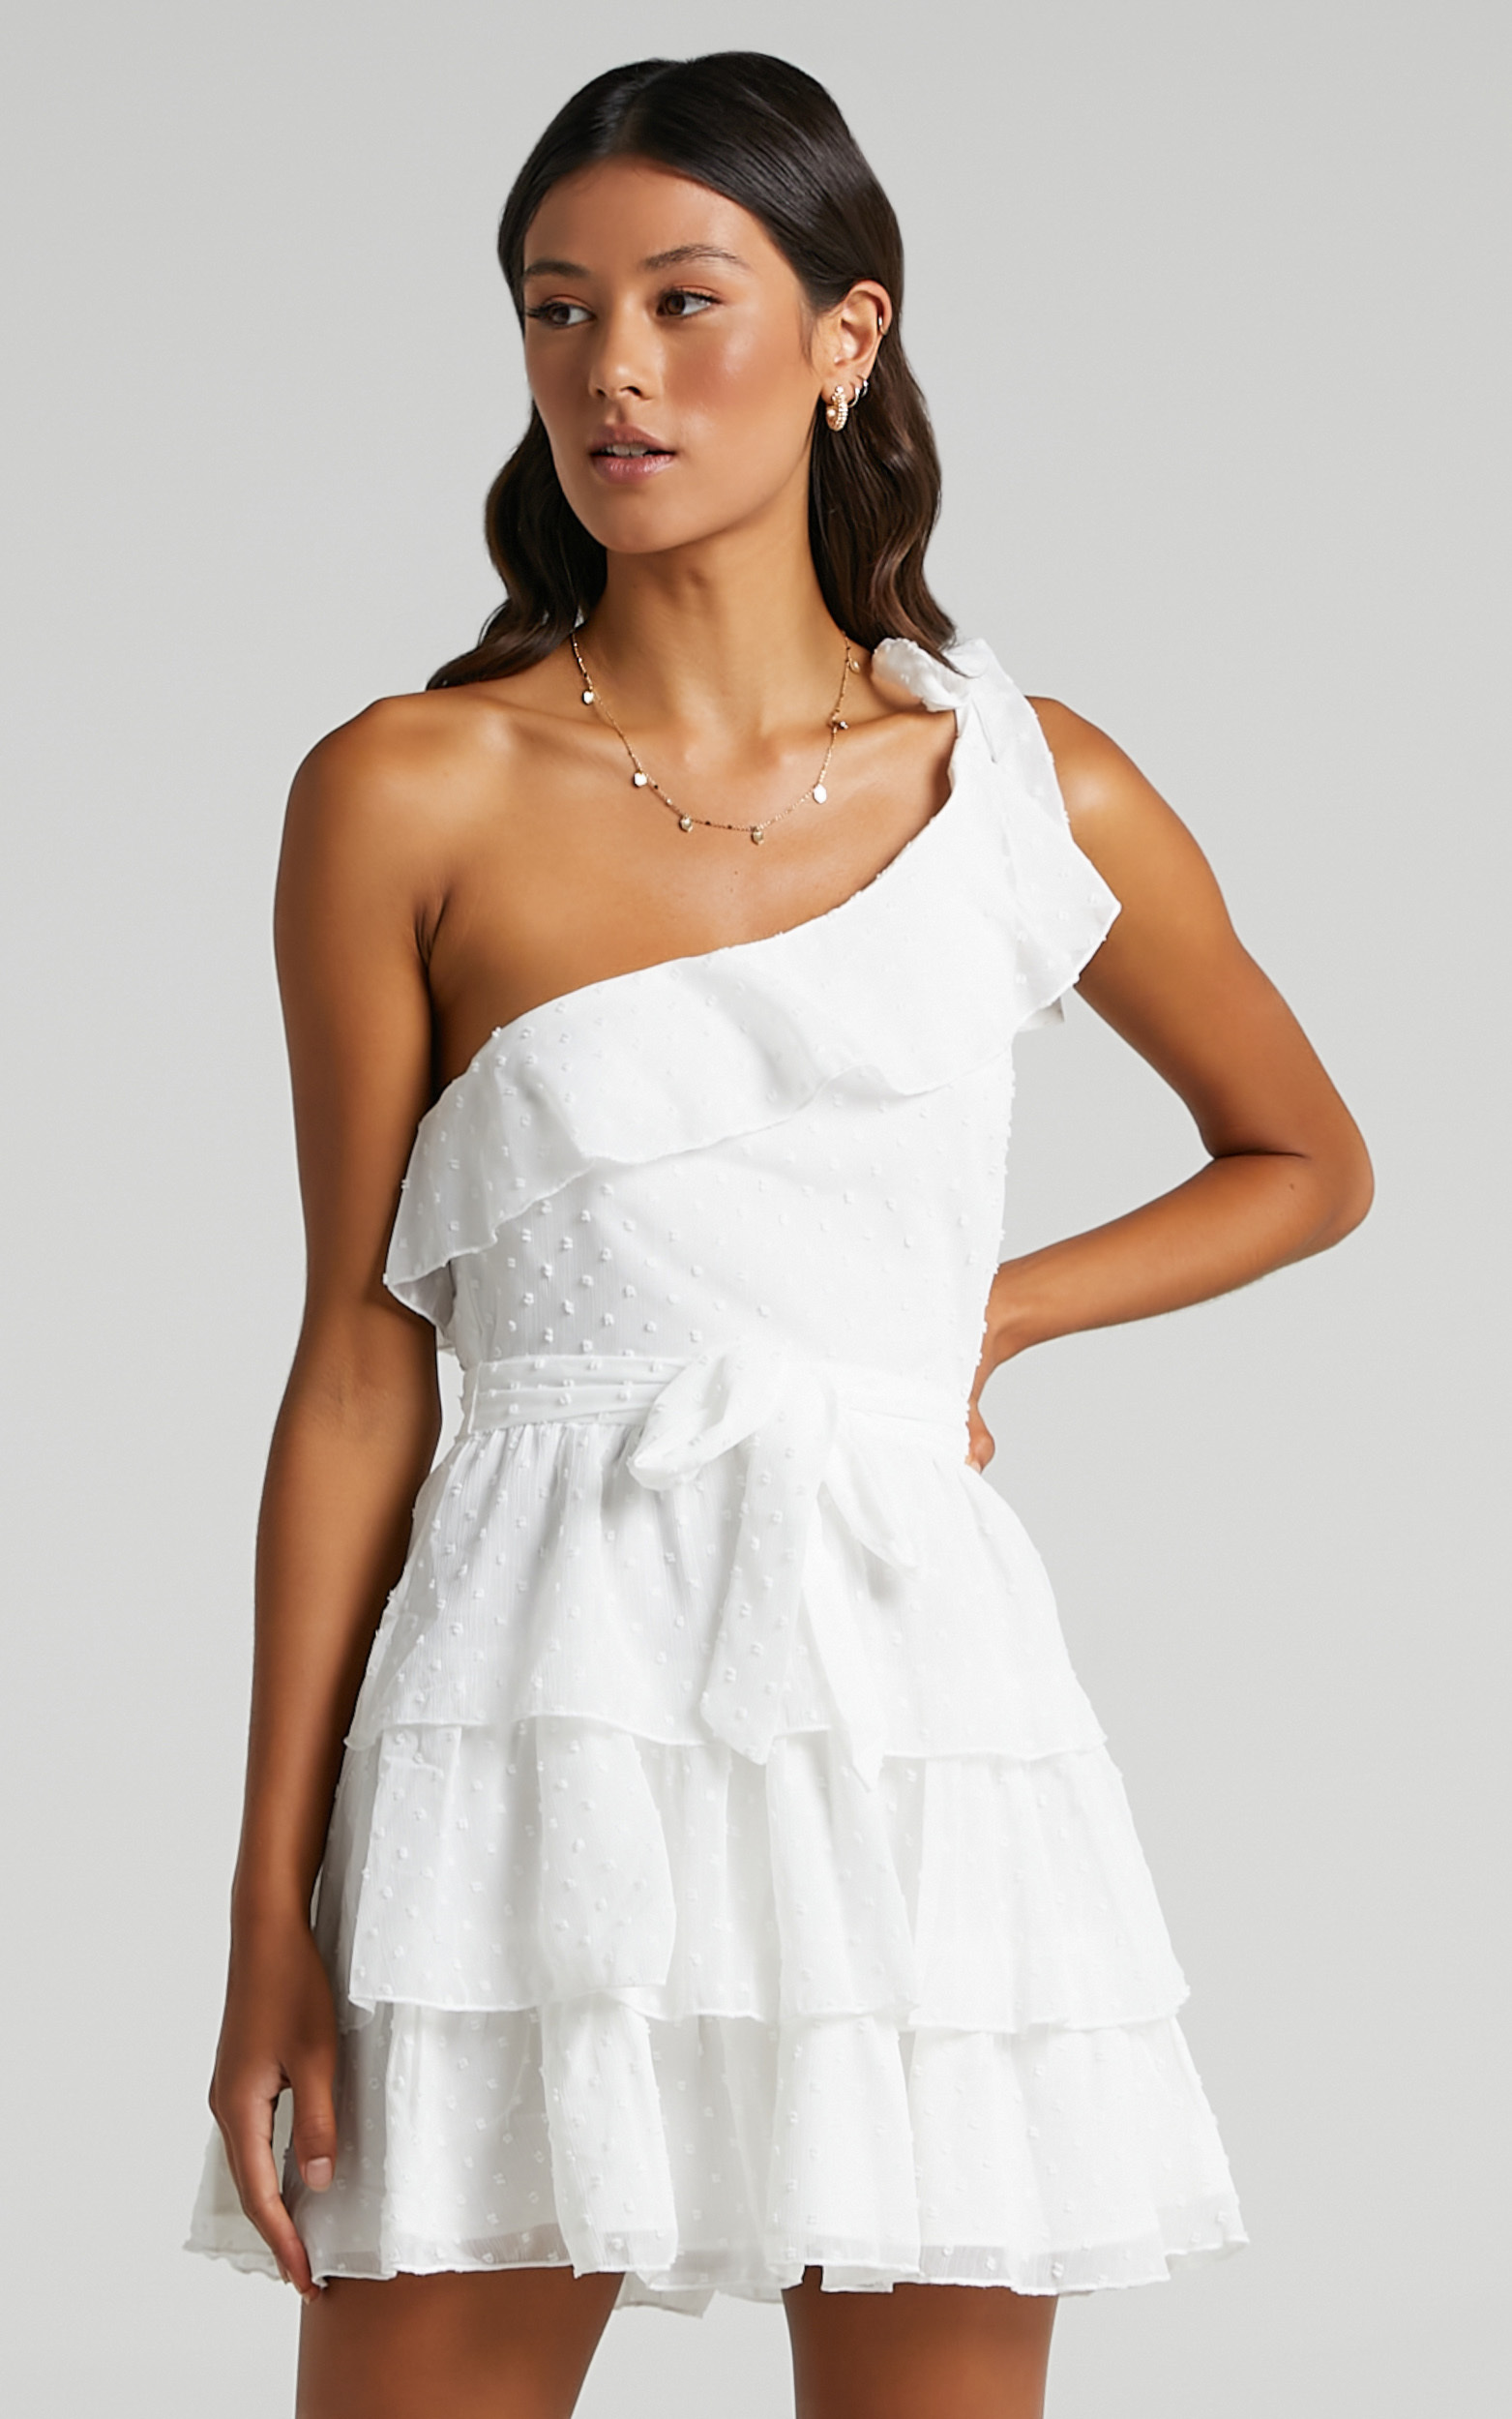 Darling I Am A Daydream One Shoulder Ruffle Mini Dress in White - 20, WHT7, hi-res image number null